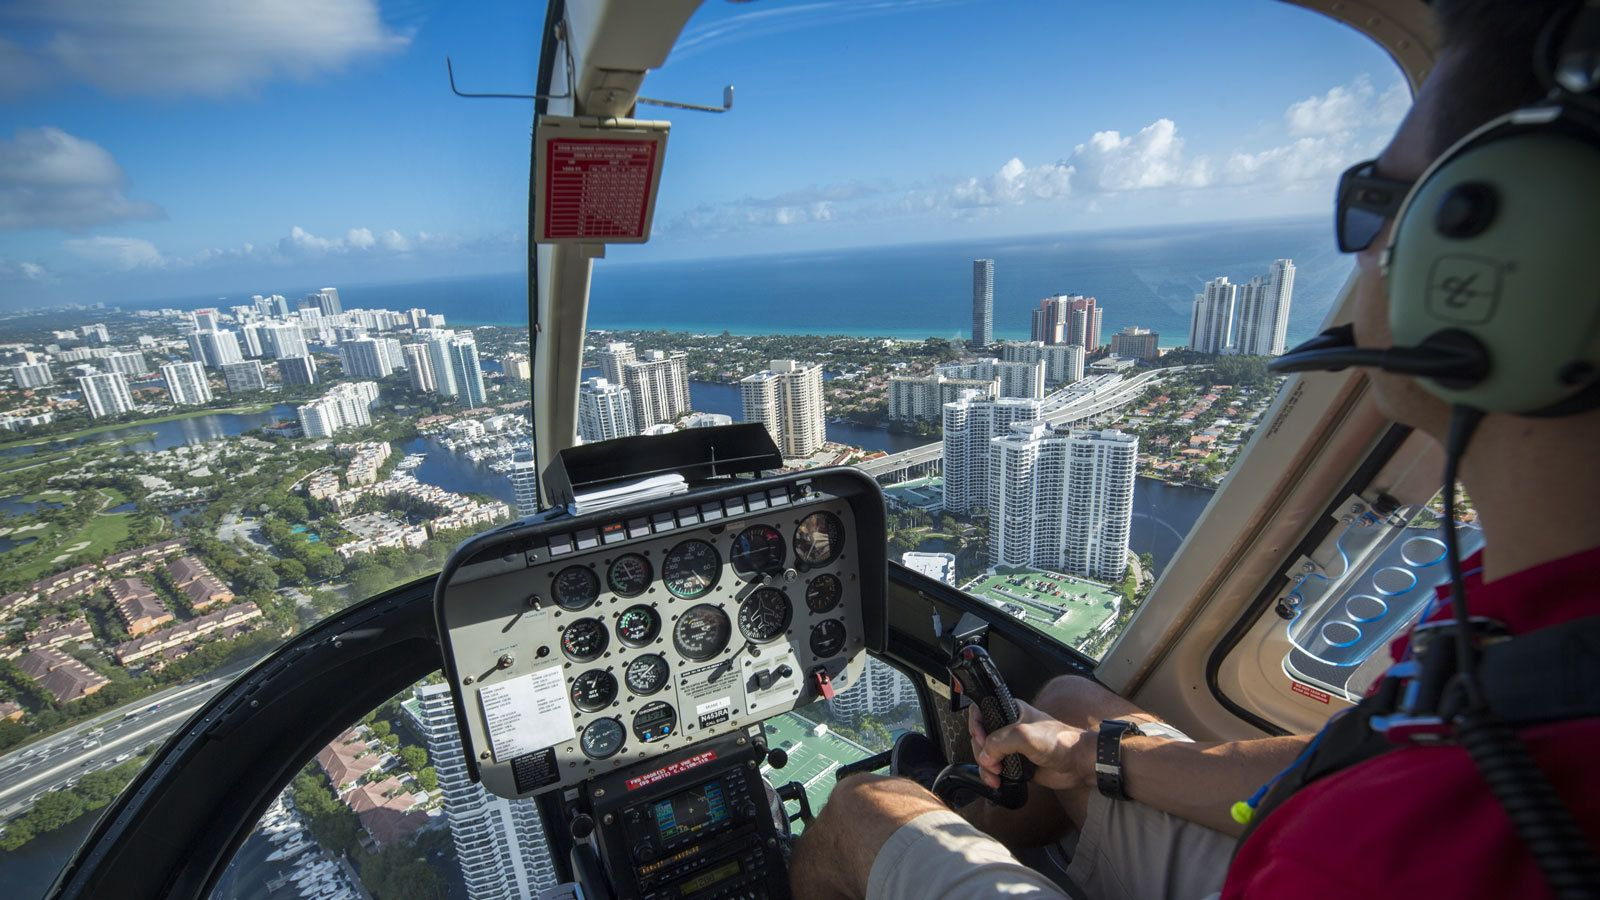 piloting a helicopter above the city in Florida